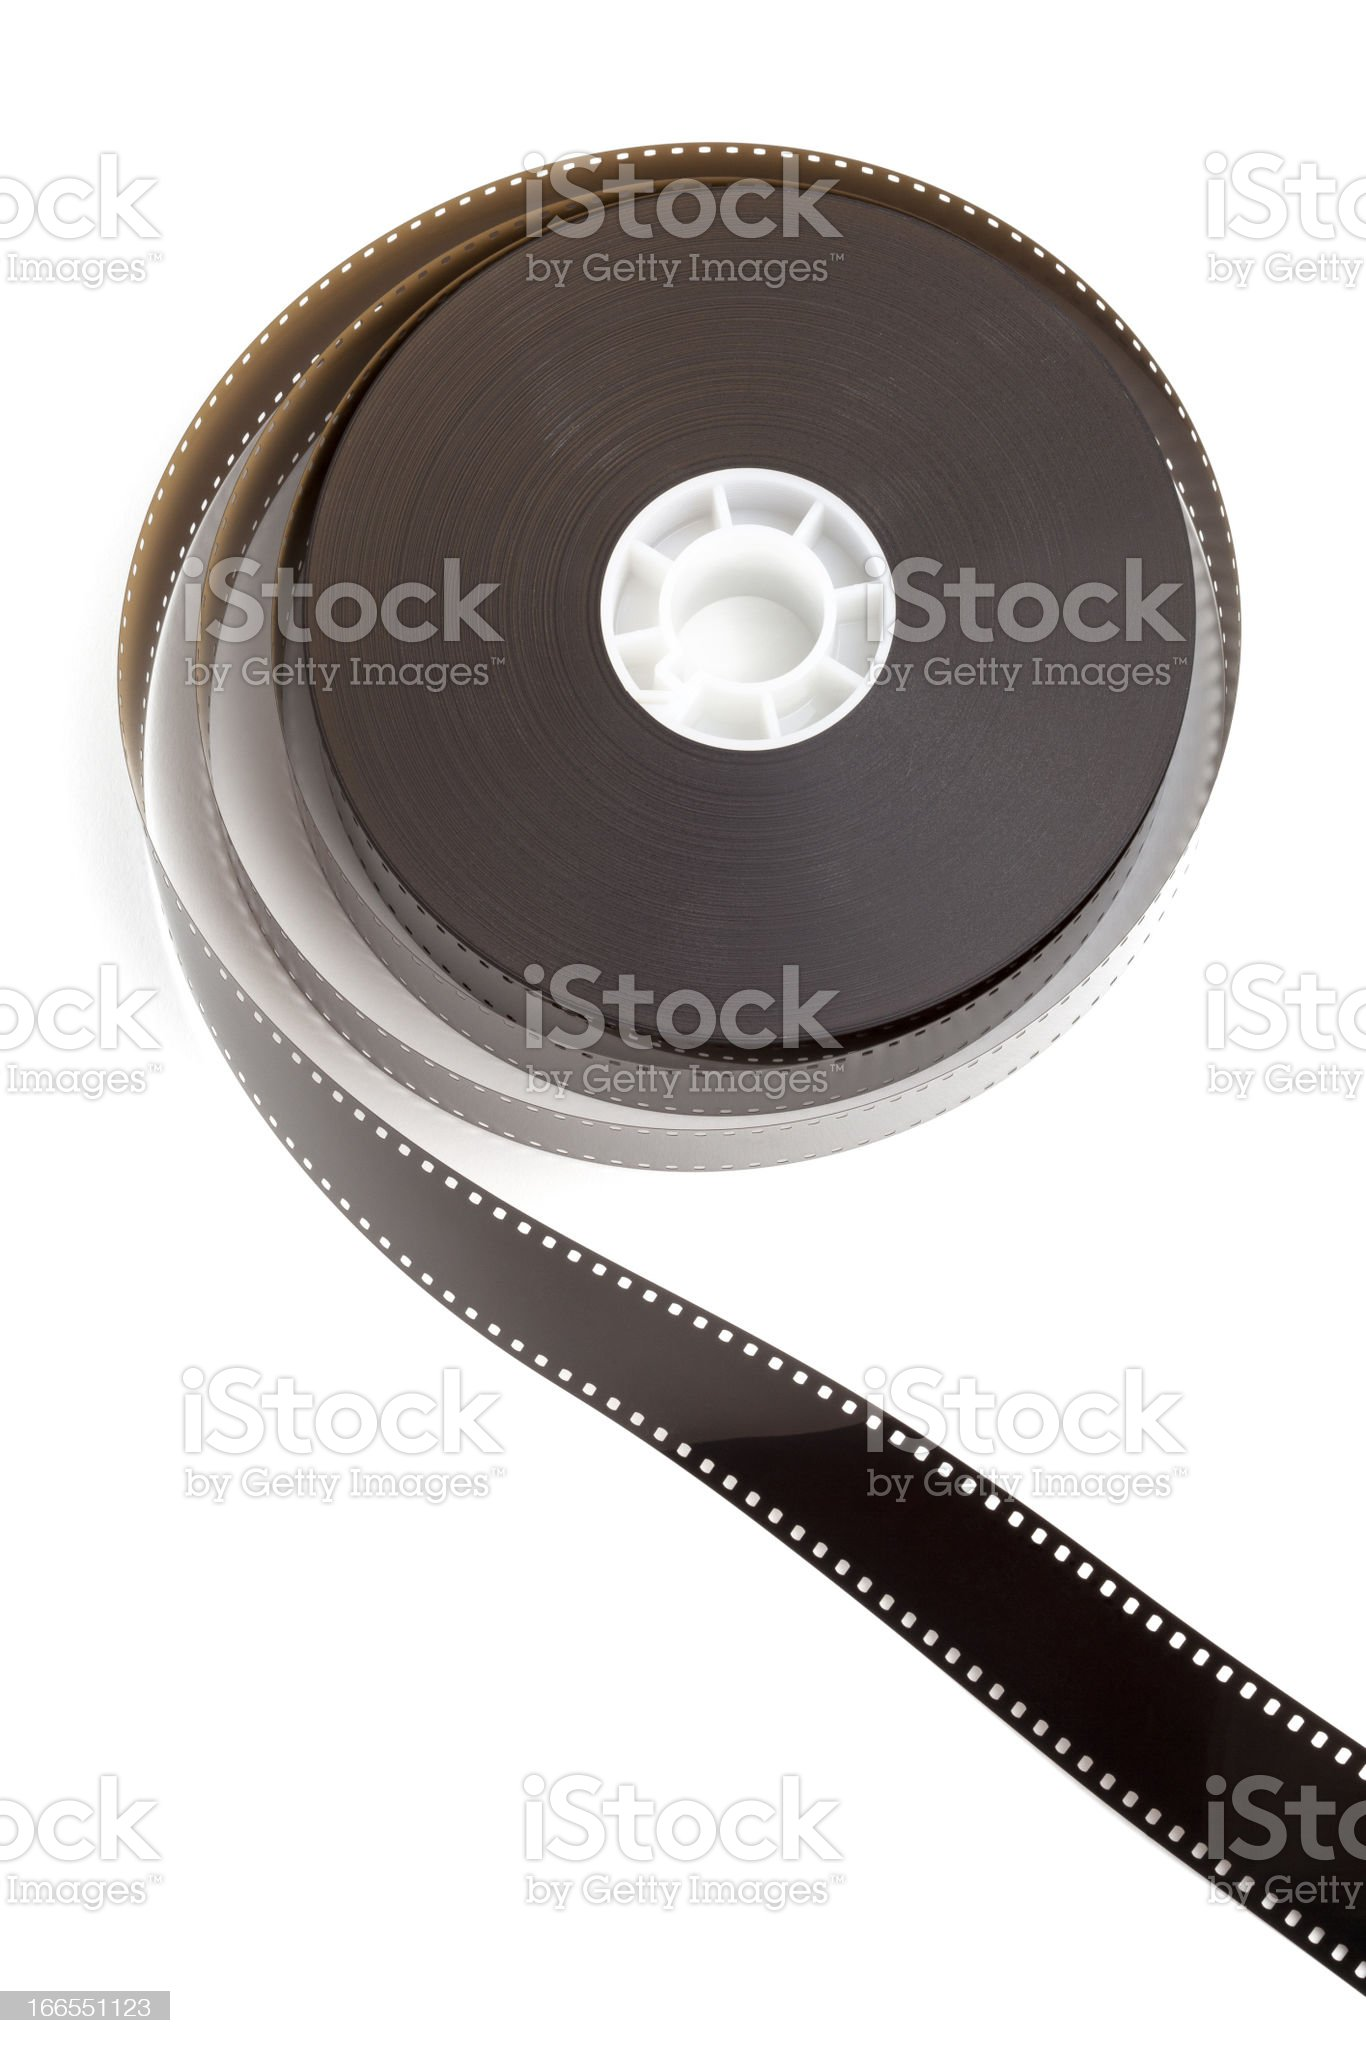 Motion picture film strip, movie reel royalty-free stock photo